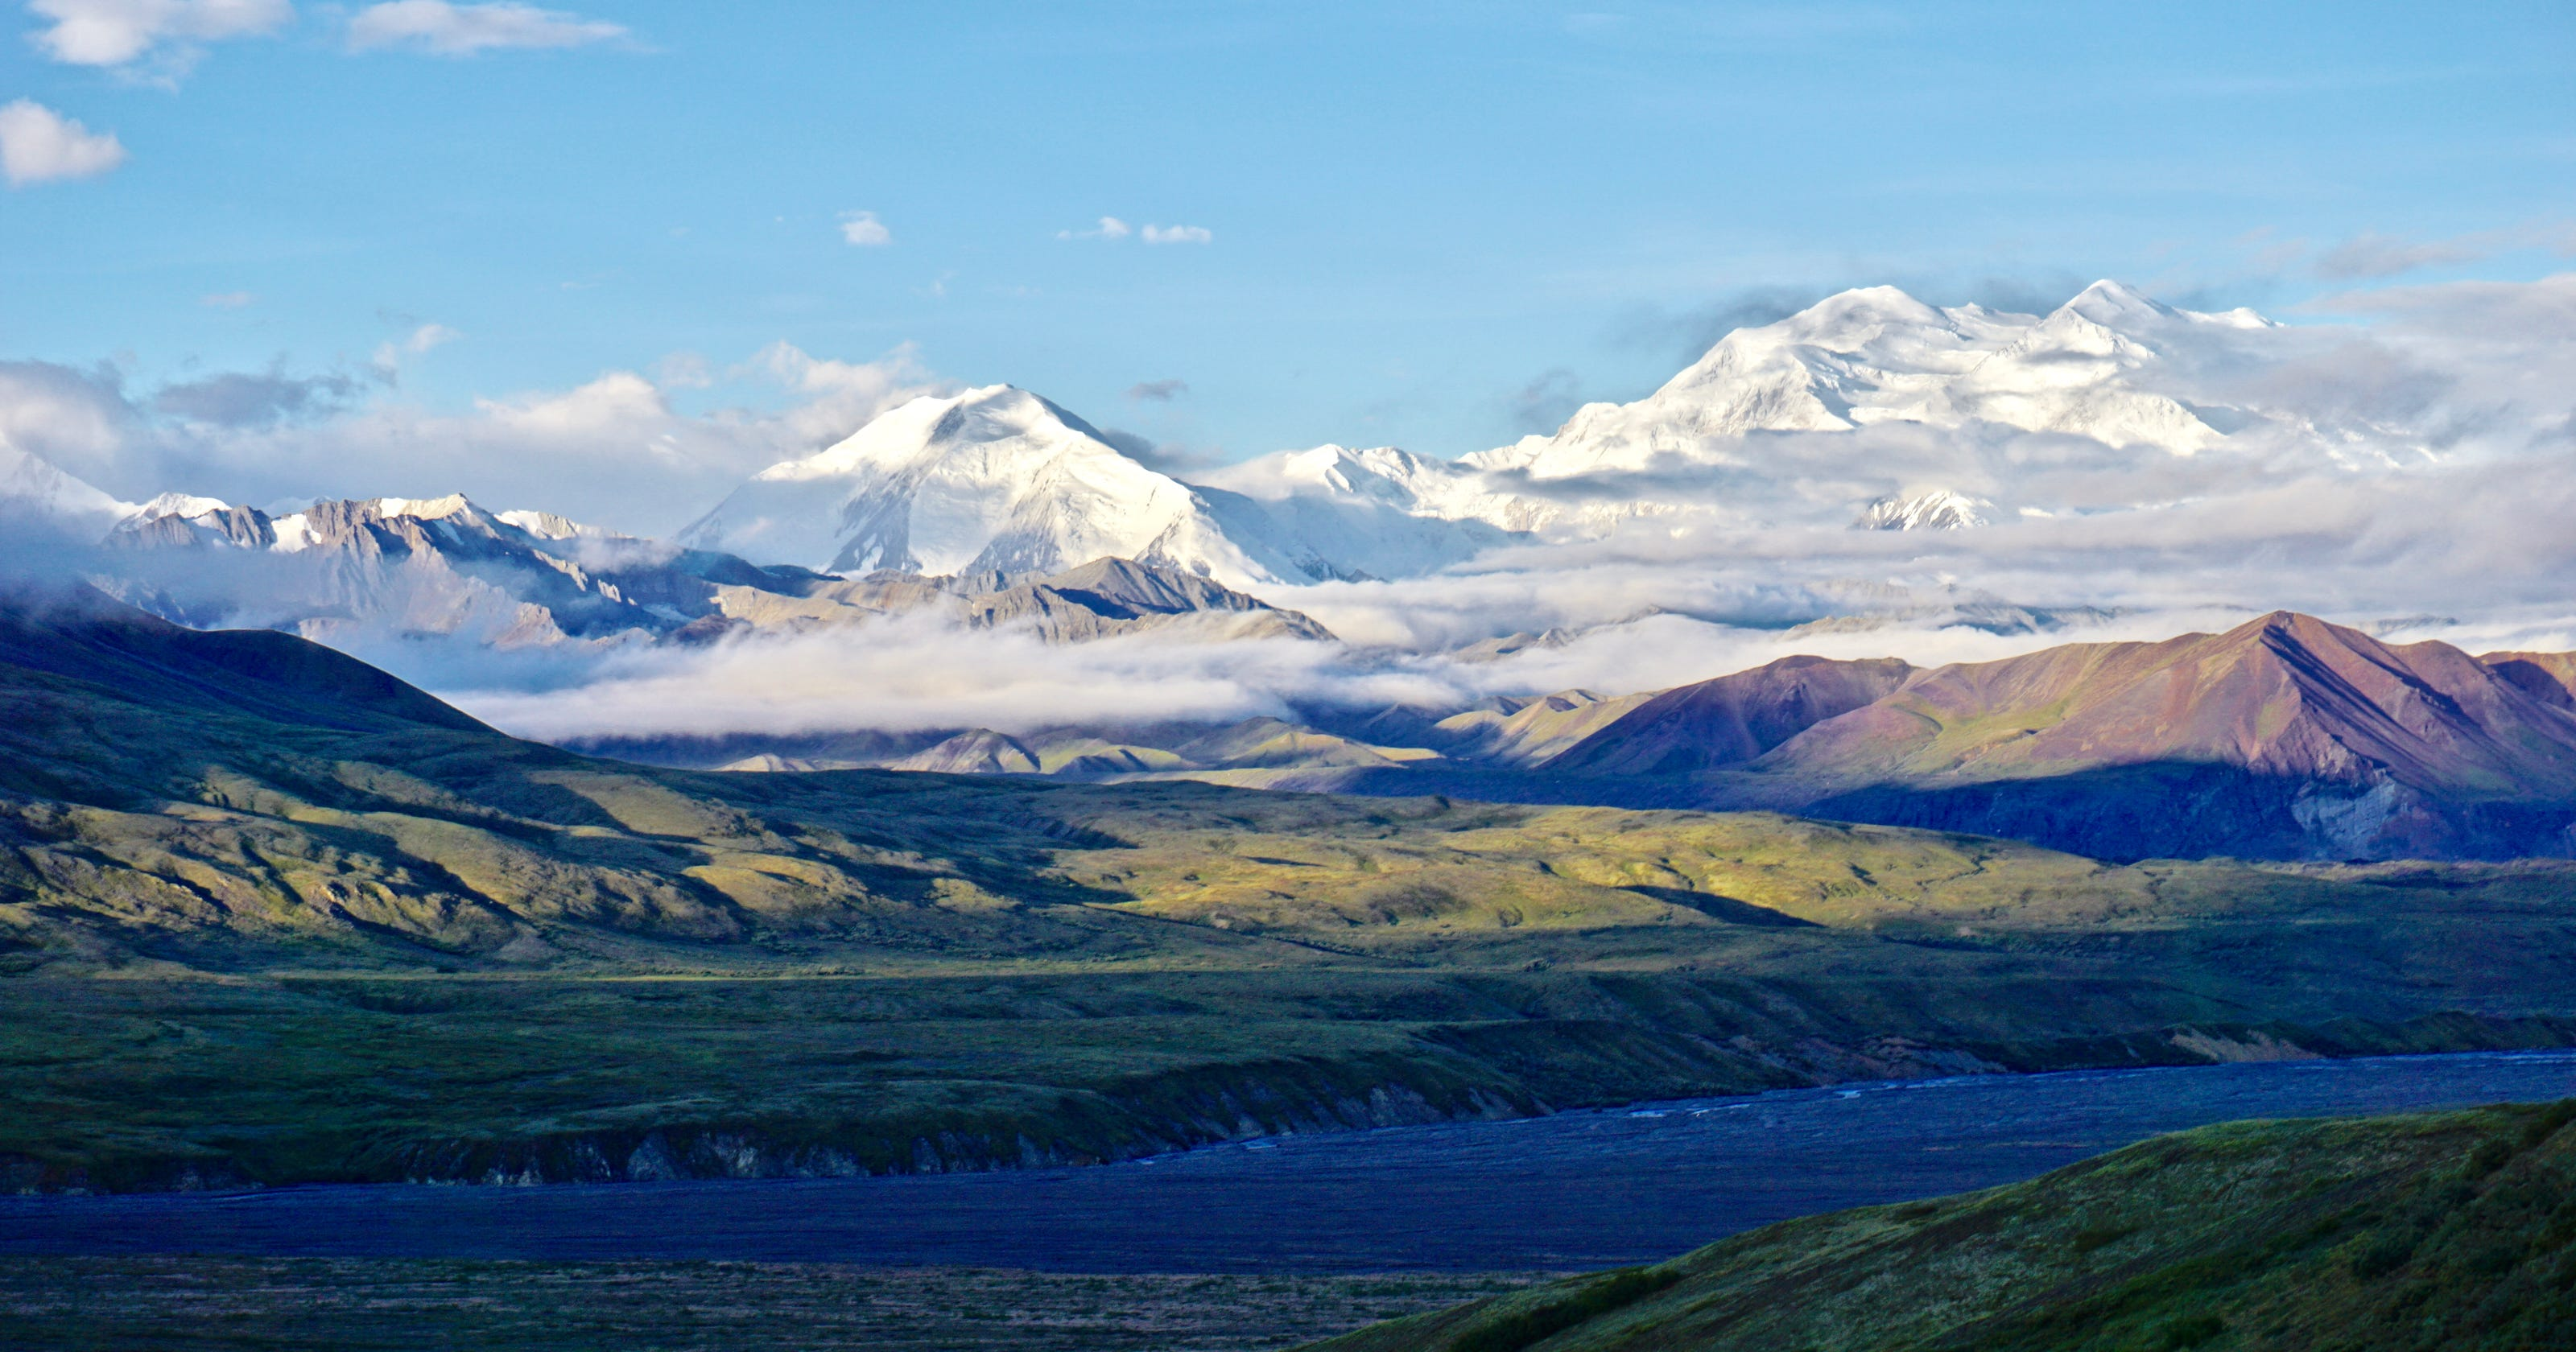 Alaska Cruise Tours: Huge Savings on Cruise and Tour Packages!